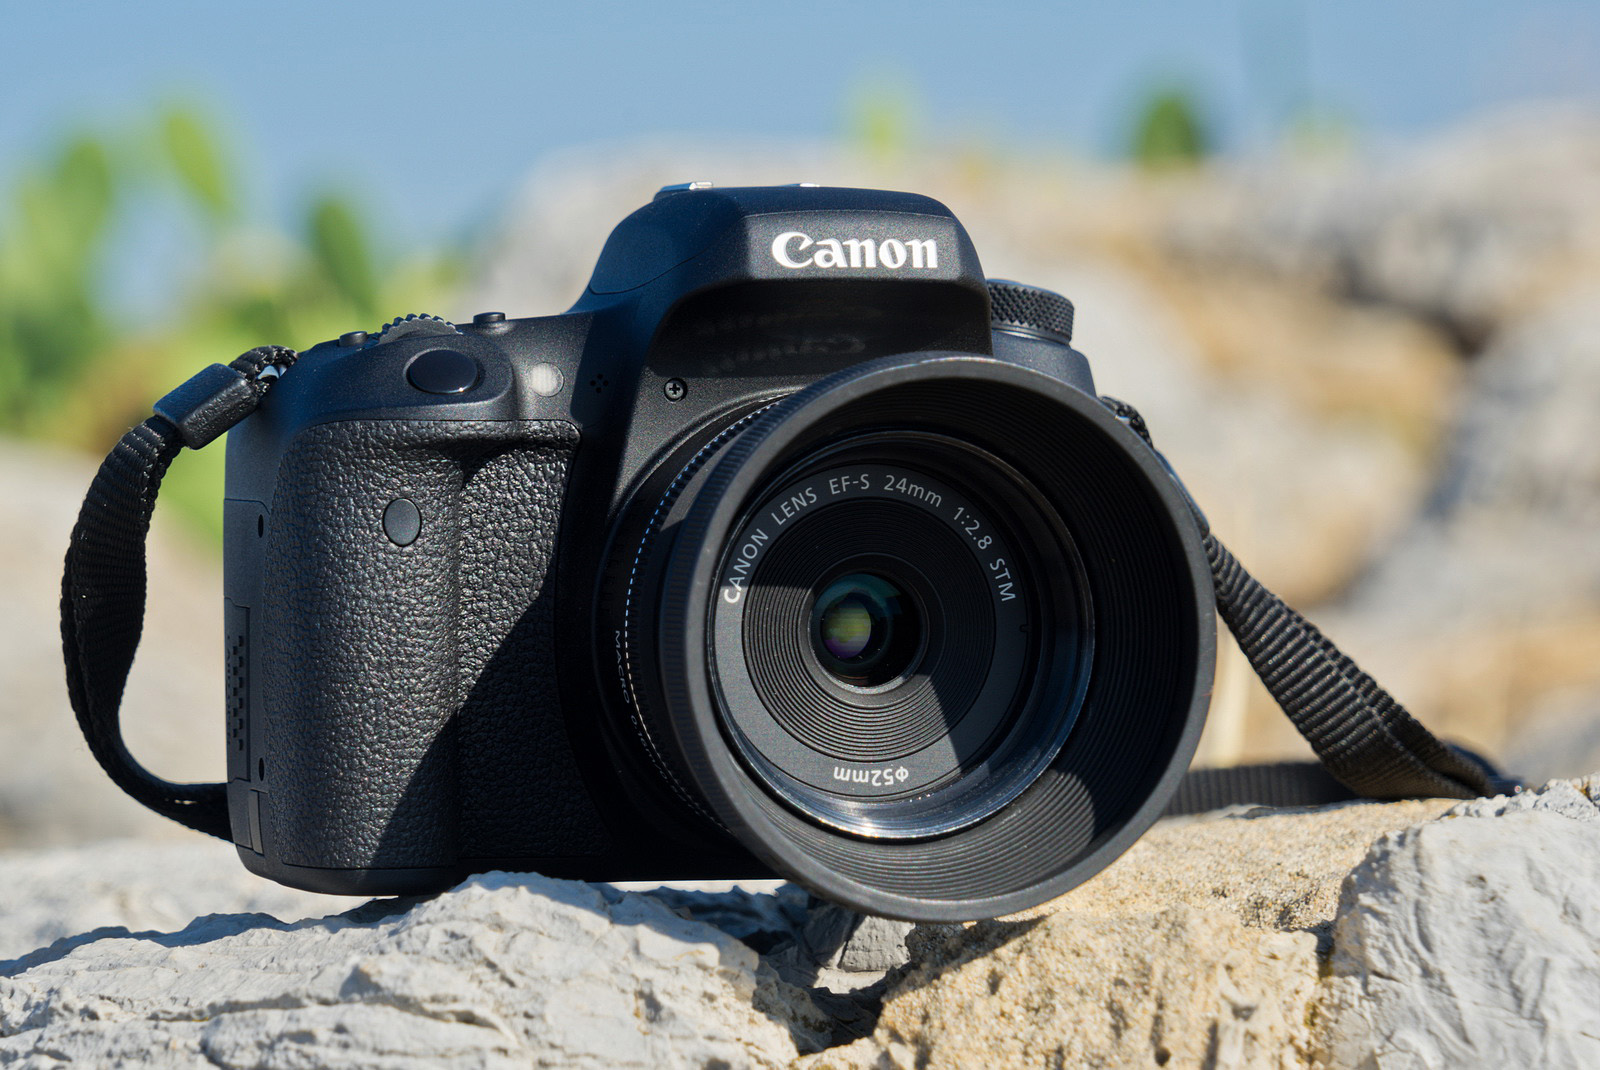 Astrophotography Cameras - Whats The Best Choice for Canon camera for astrophotography